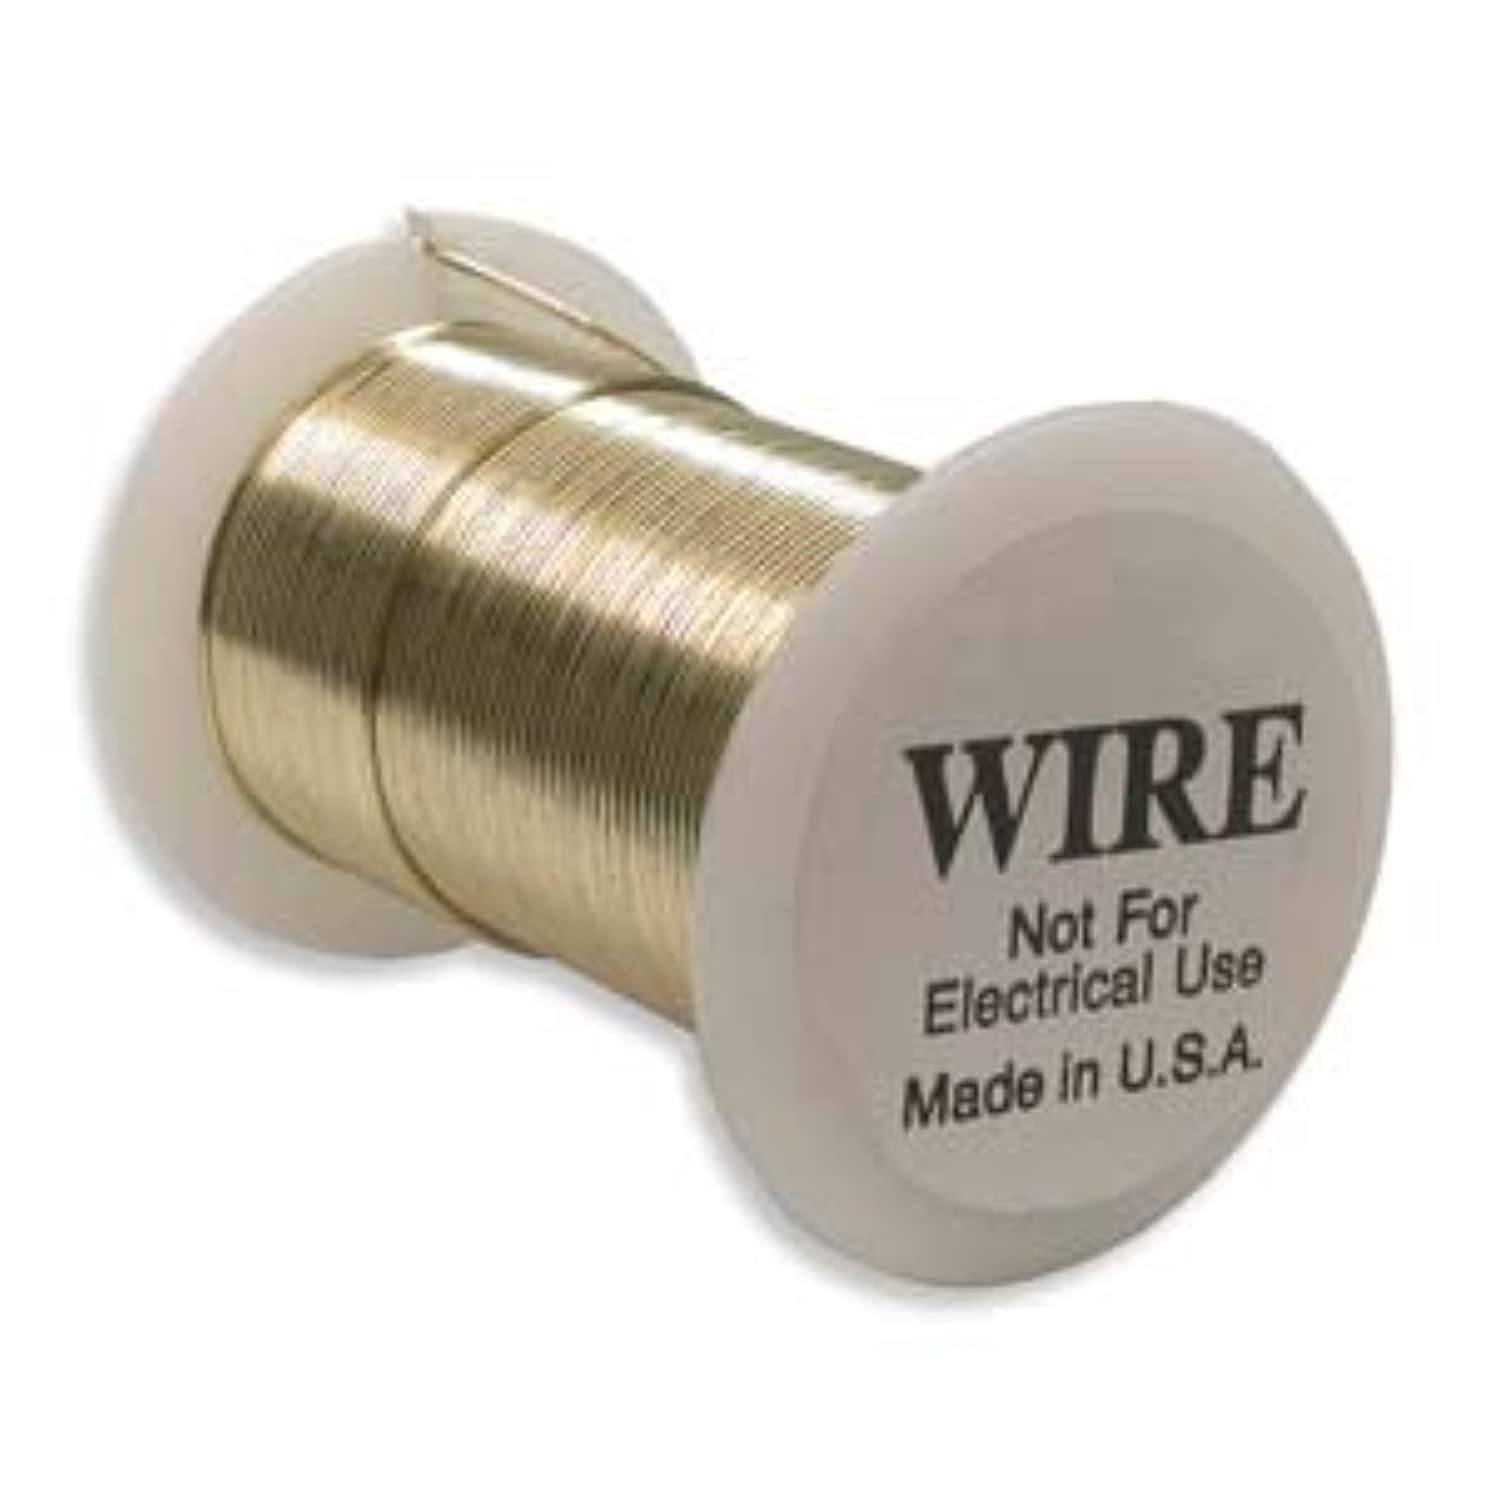 Craft Wire Gold Color Tarnish Resistant 20 Ga 15 Yd by Beadsmith